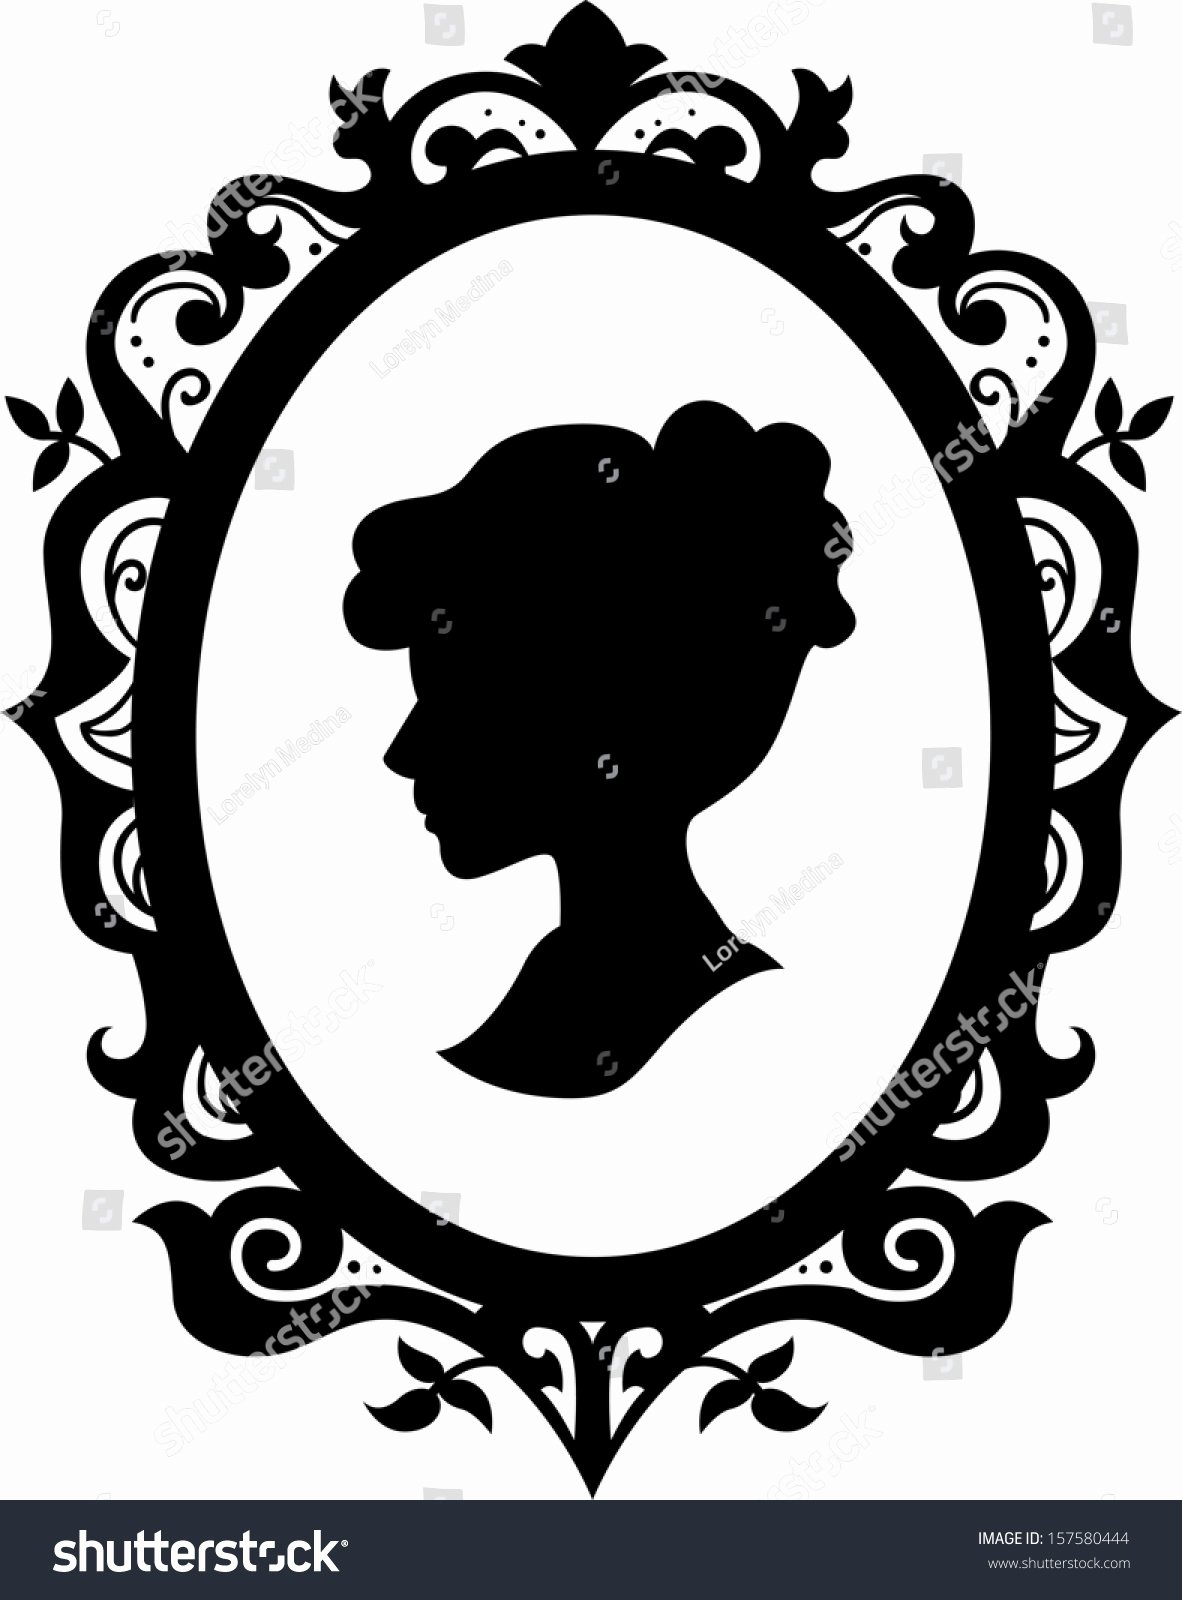 Black and White Illustration New Black White Illustration Cameo Featuring Silhouette Stock